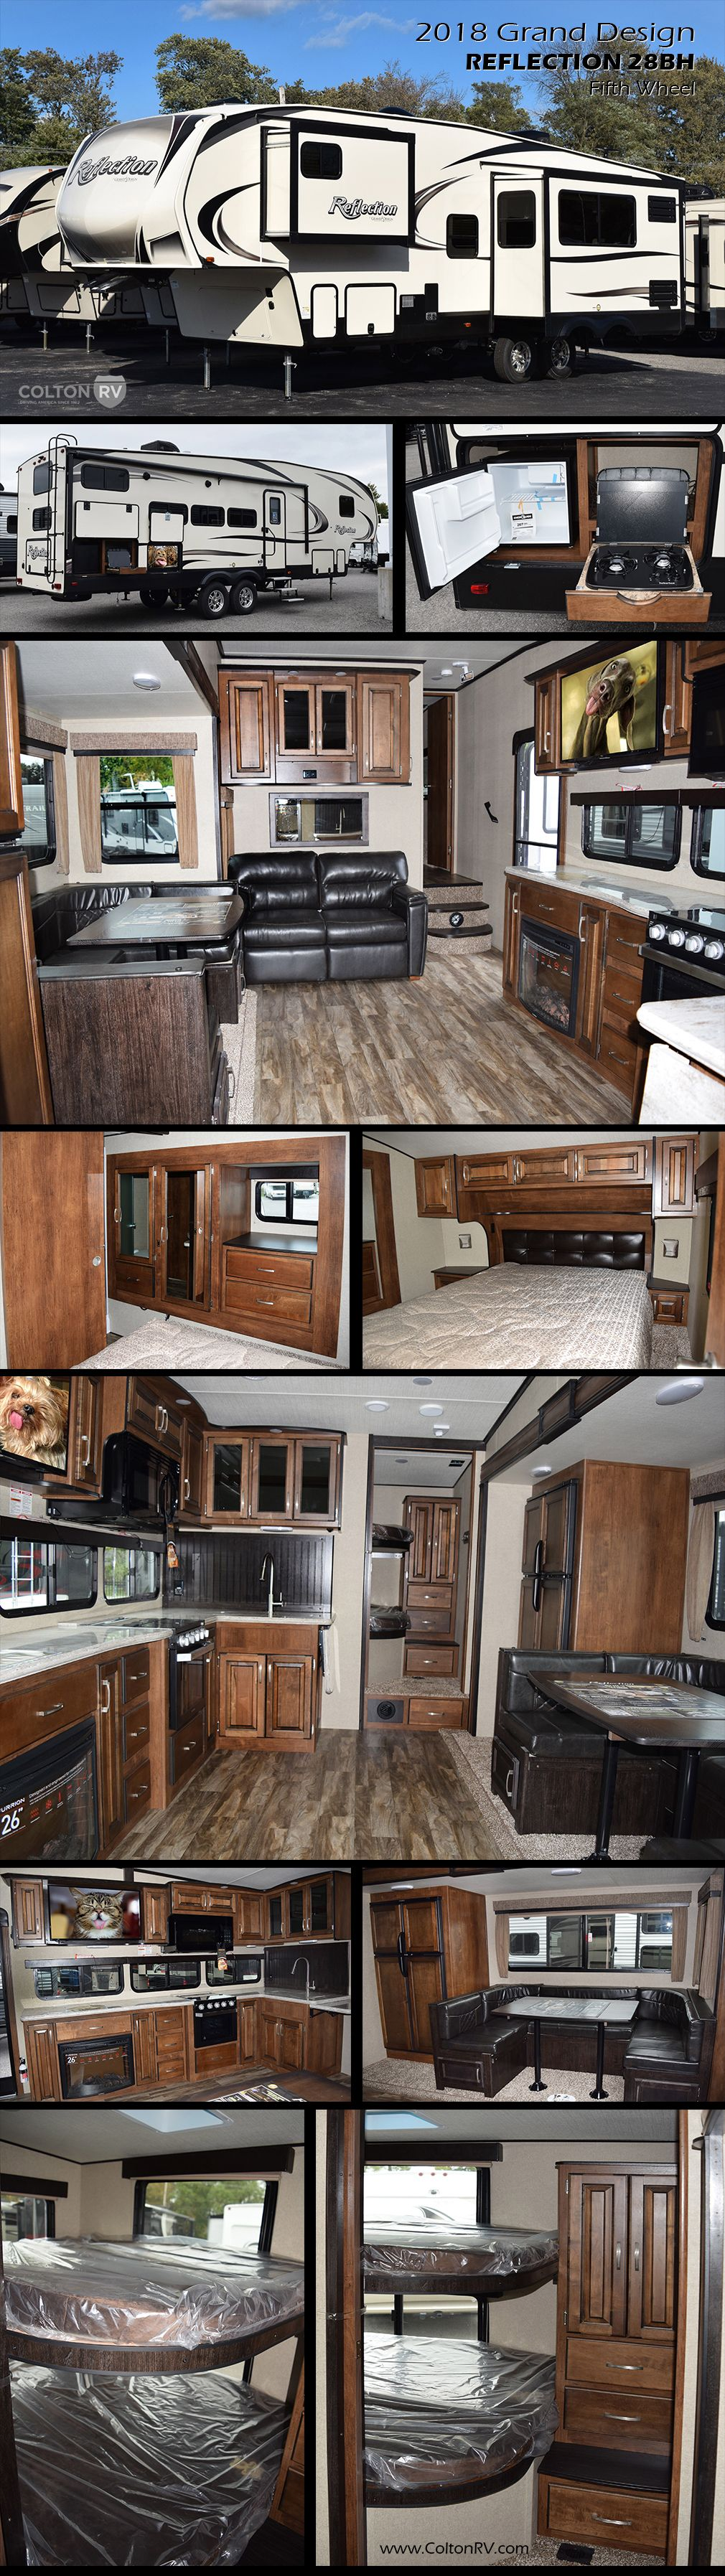 Inventory Colton Rv In Ny Buffalo Rochester And Syracuse Ny Rv Dealer Fifth Wheel Campers And Class A Motorhomes For Sale In Ny Camper Interior 5th Wheels Vintage Camper Interior